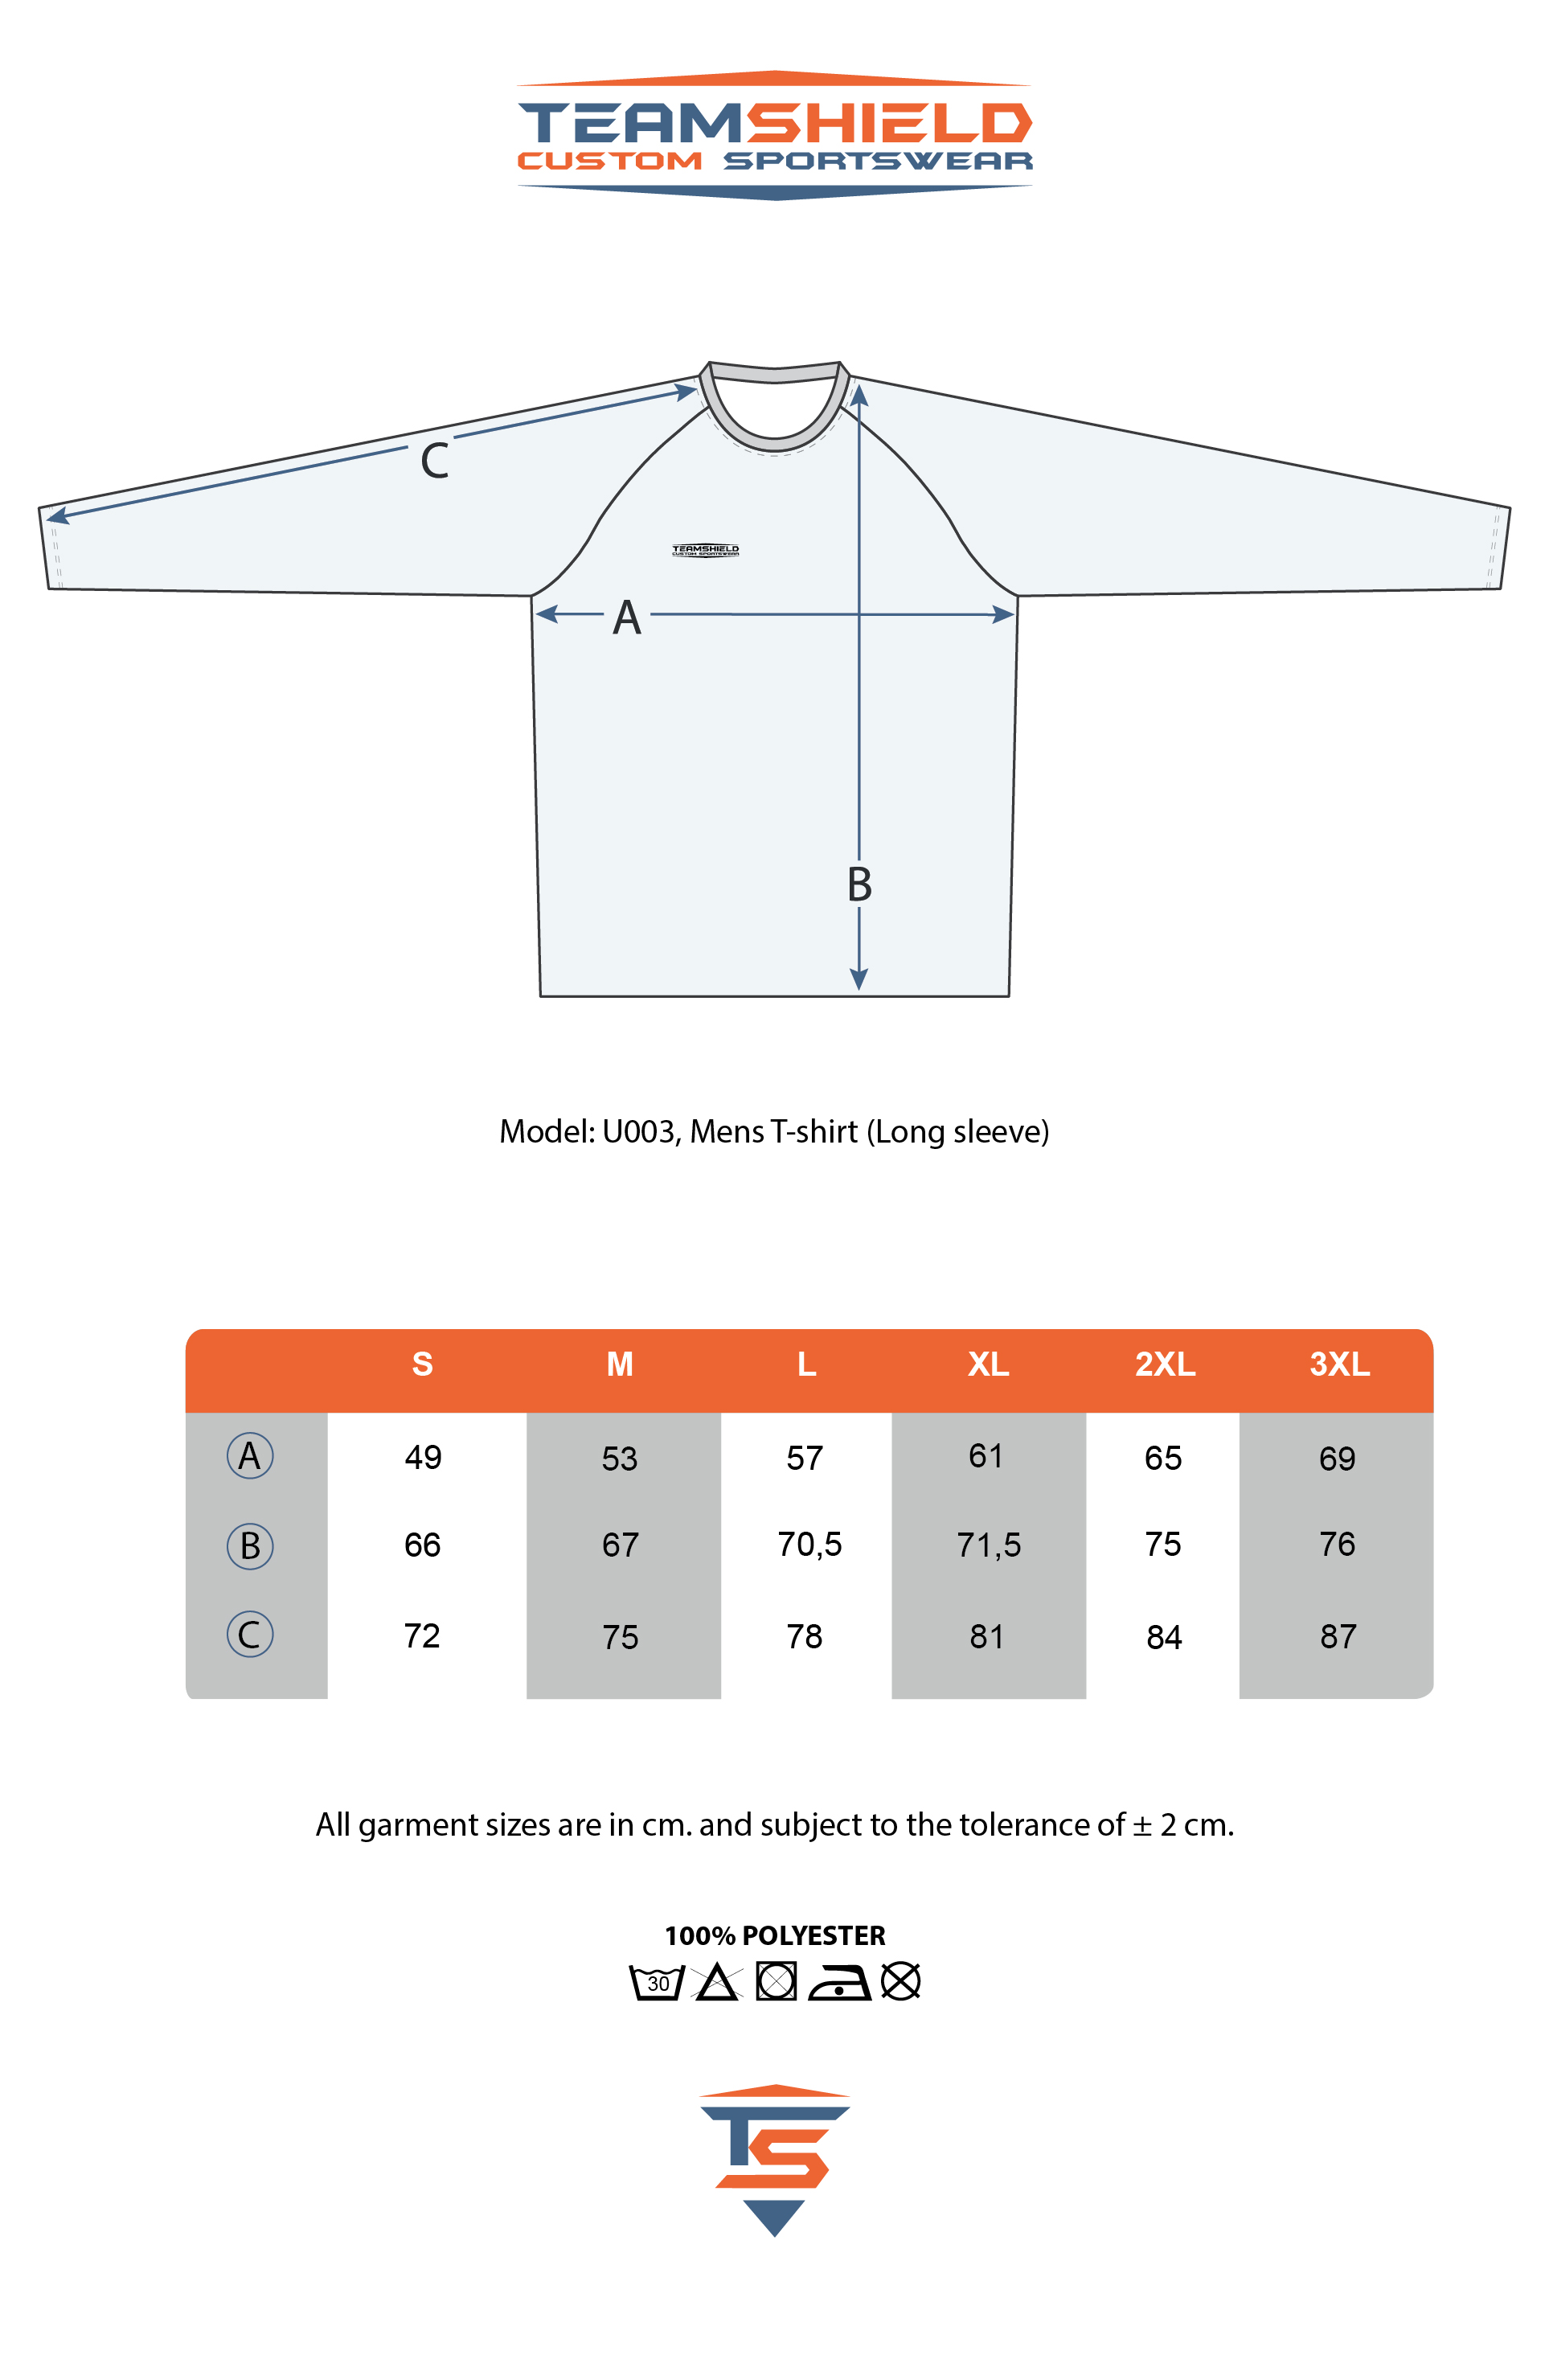 Teamshield-Custom-Teamwear-Sizechart-U003-Sublimation-Shirt-Unisex-Long-Sleeve